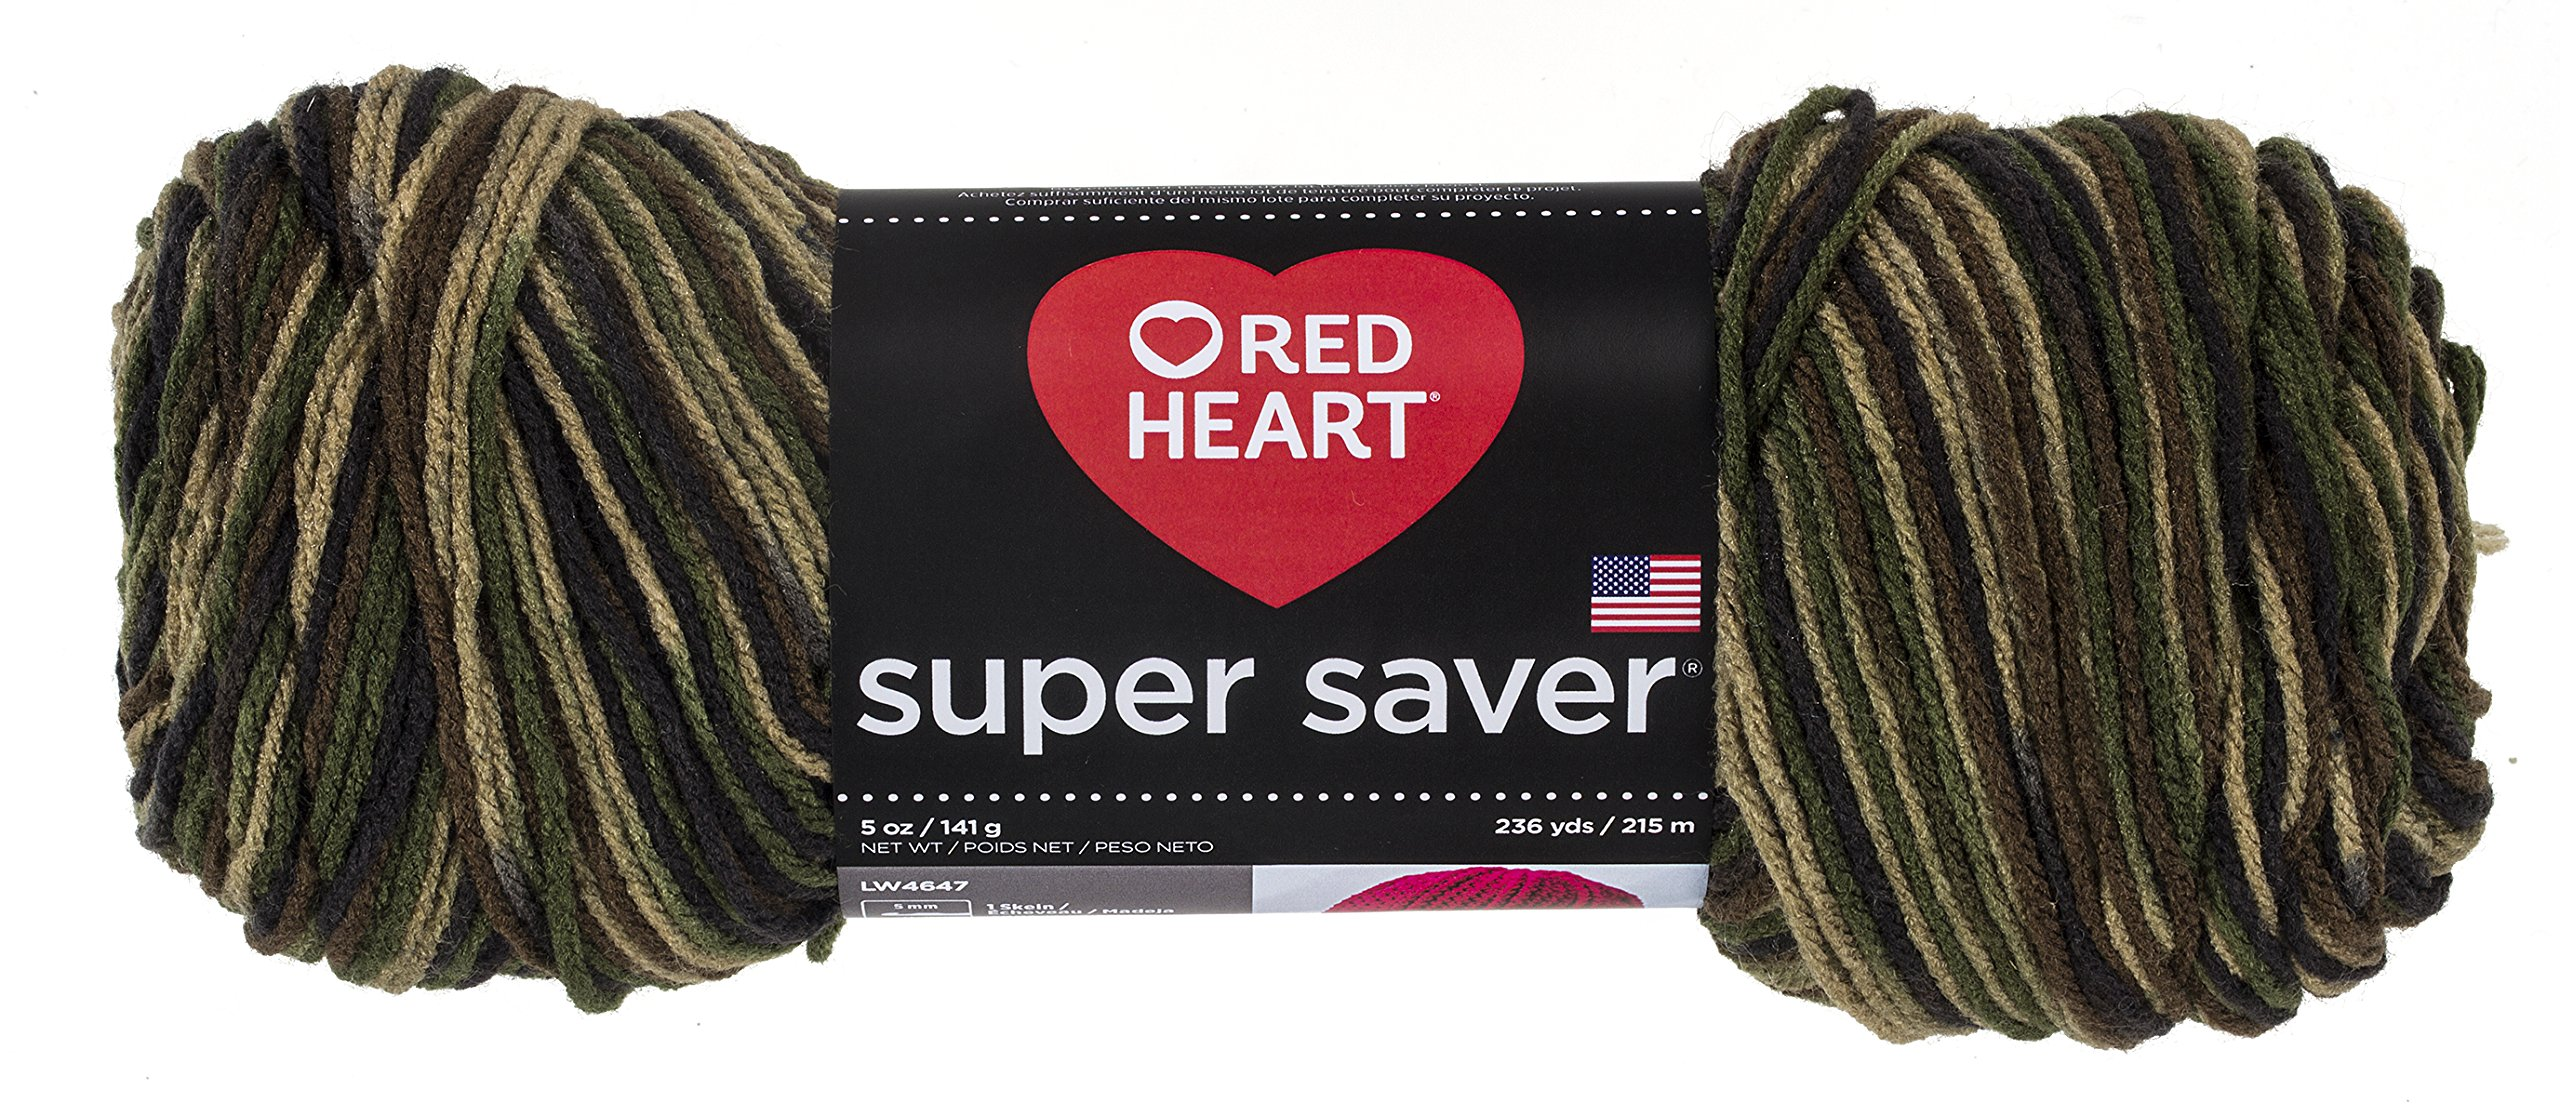 Red HeartSuper Saver Yarn, Camouflage Print